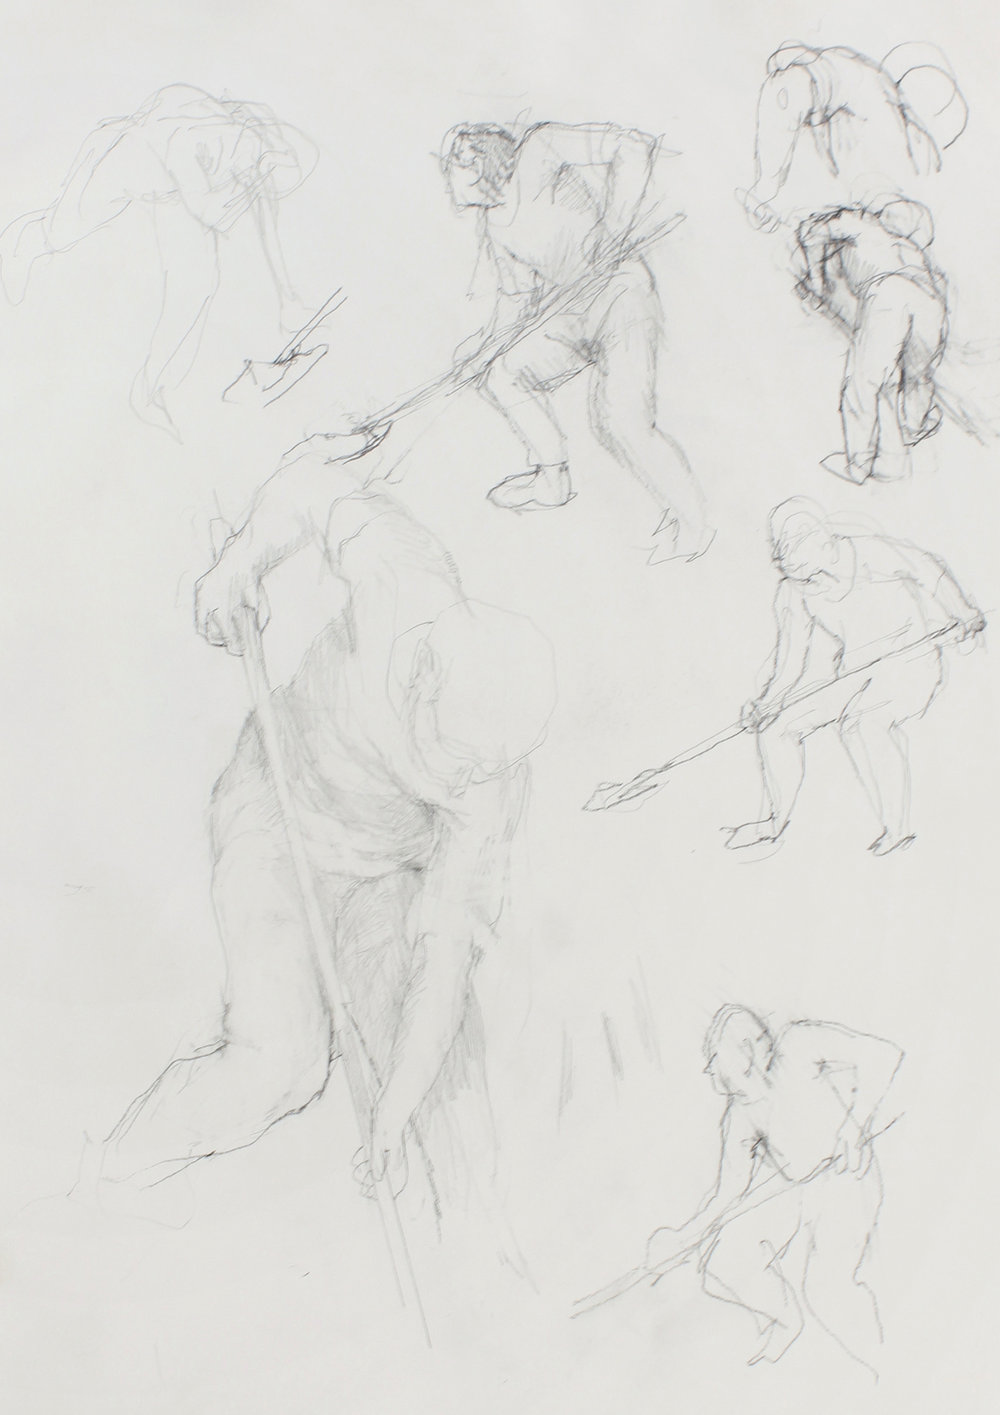 1986_Study_of_Multiple_Diggers_pencil_on_paper_15x11in_WPF609.jpg